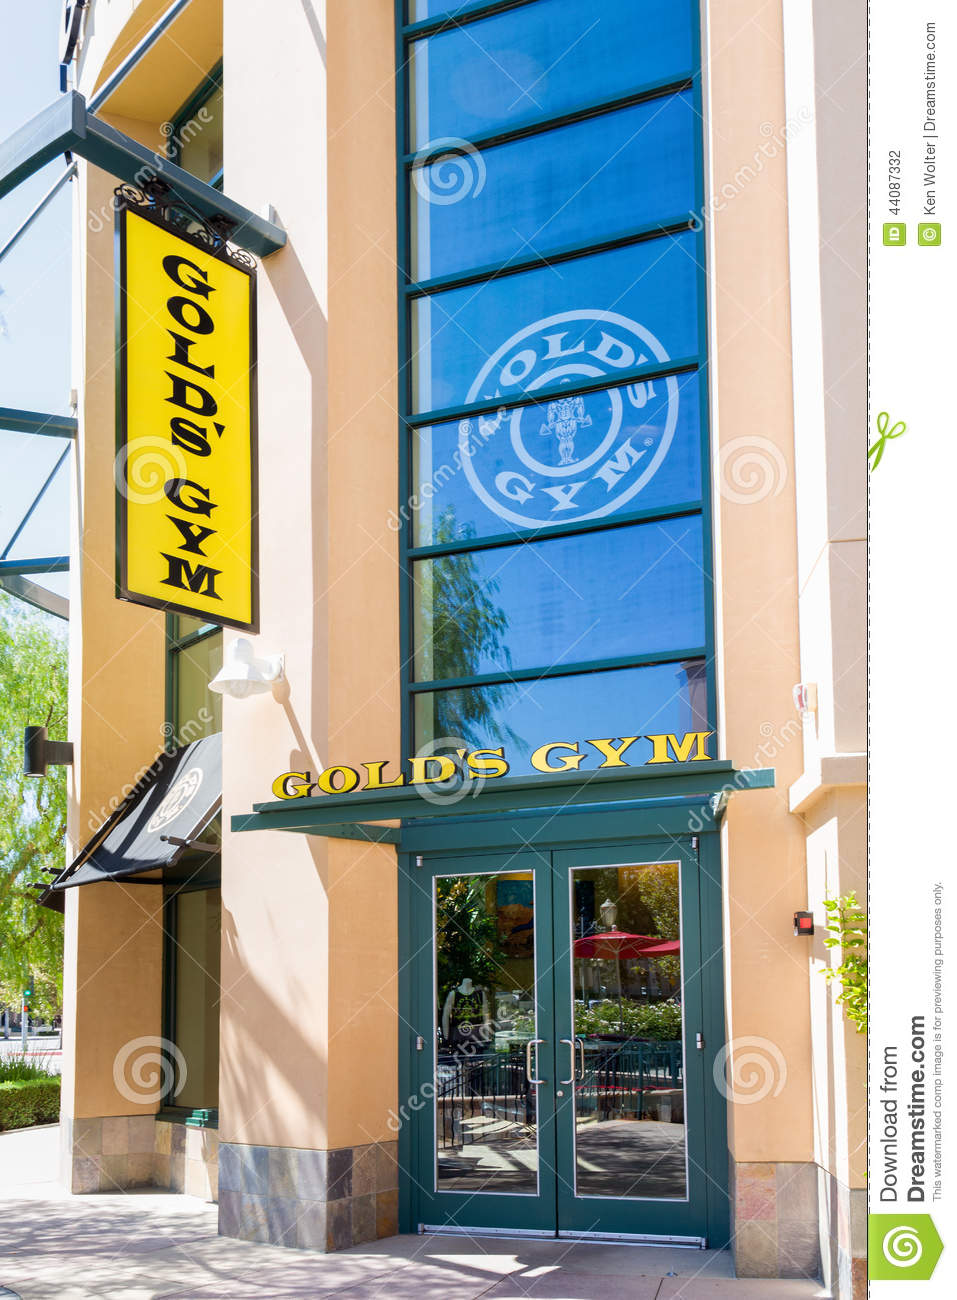 gold's gym exterior. editorial photography. image of building - 44087332